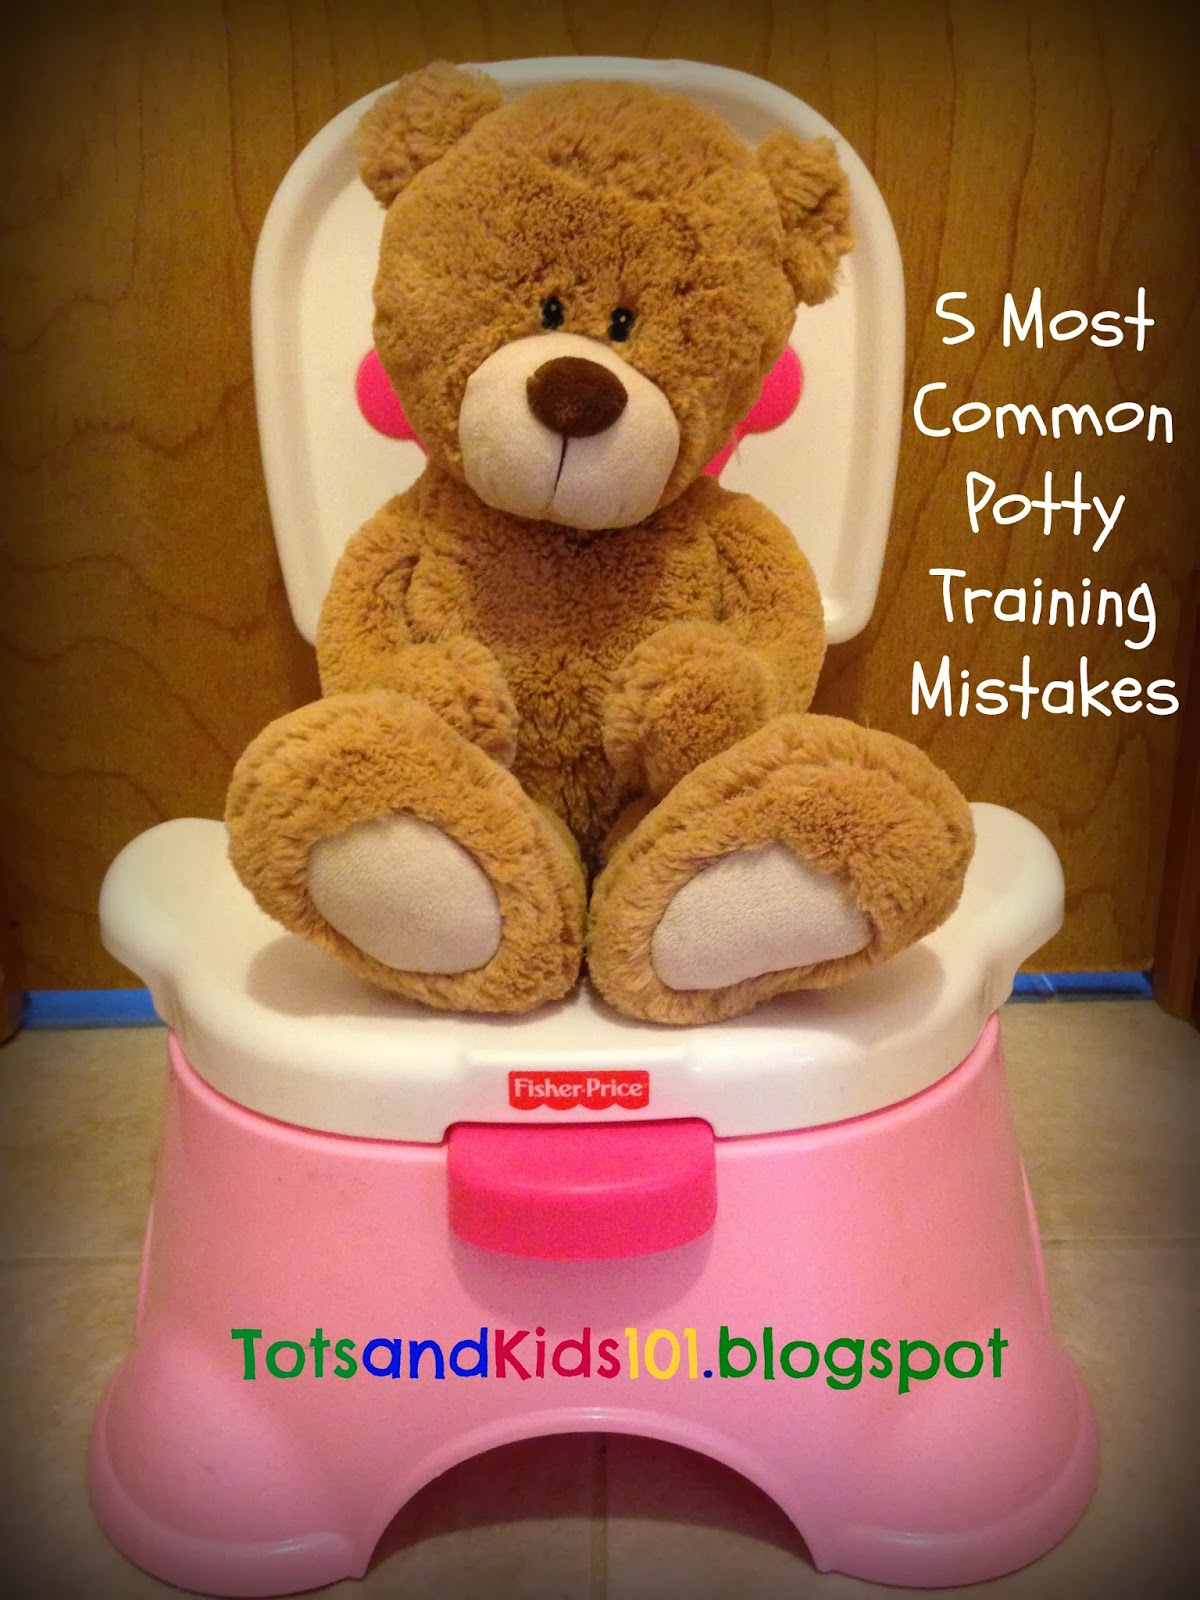 potty training tips, potty training, potty train in 3 days, 3 day potty training, potty training 3 days, how to potty train